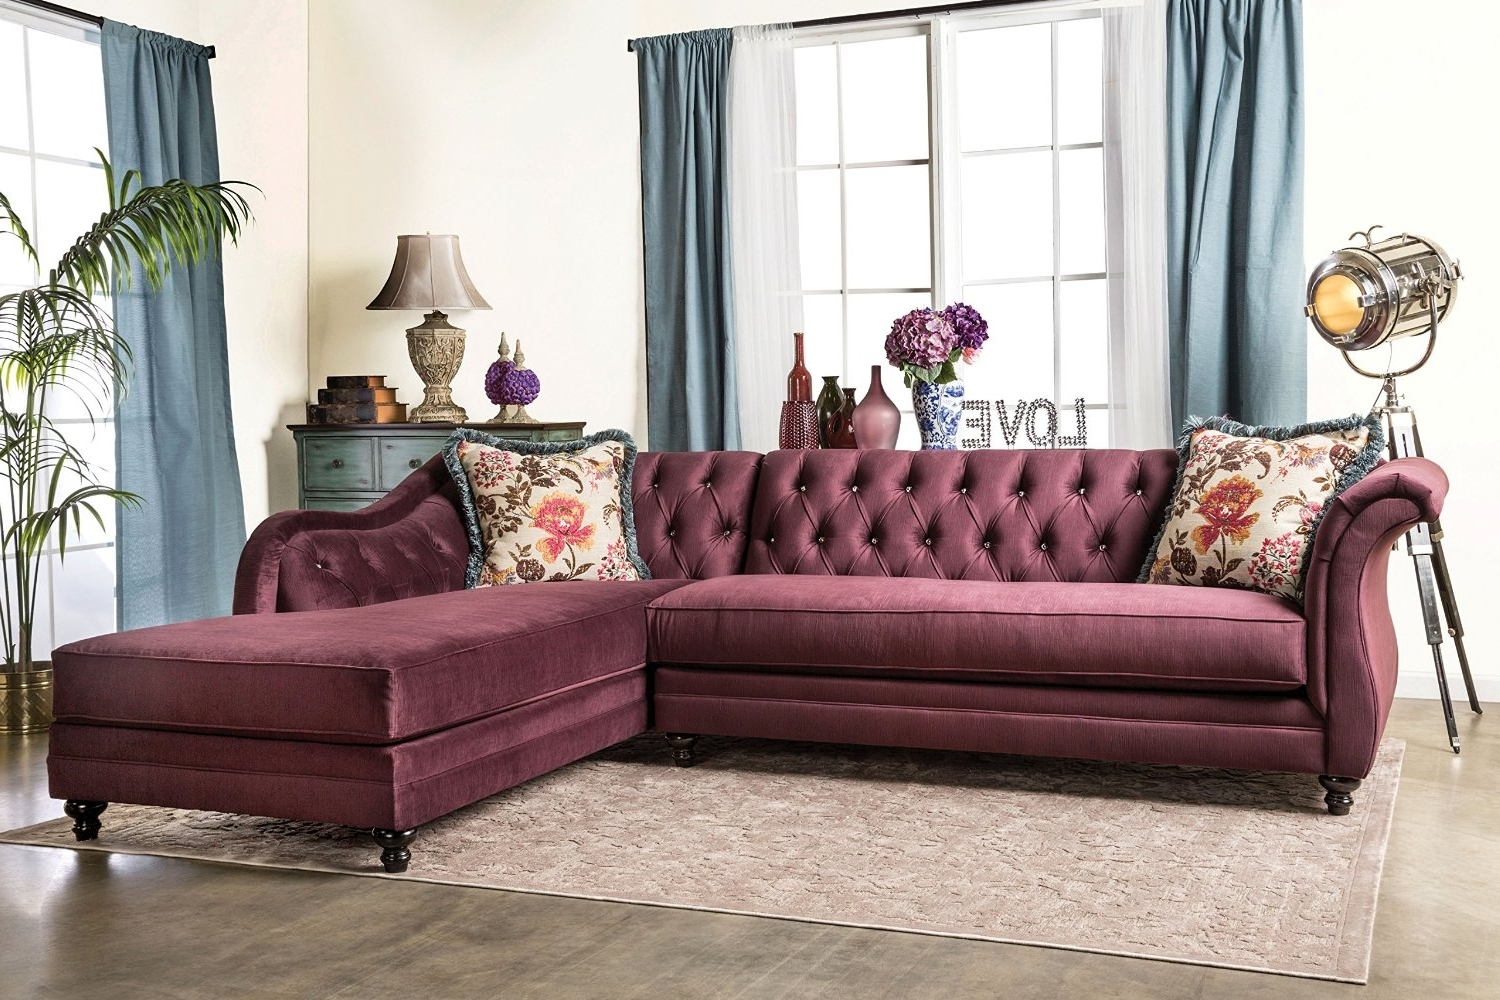 Most Up To Date Target Sectional Sofas Pertaining To Sofa : Target Tufted Loveseat Tufted Leather Furniture White (View 9 of 15)